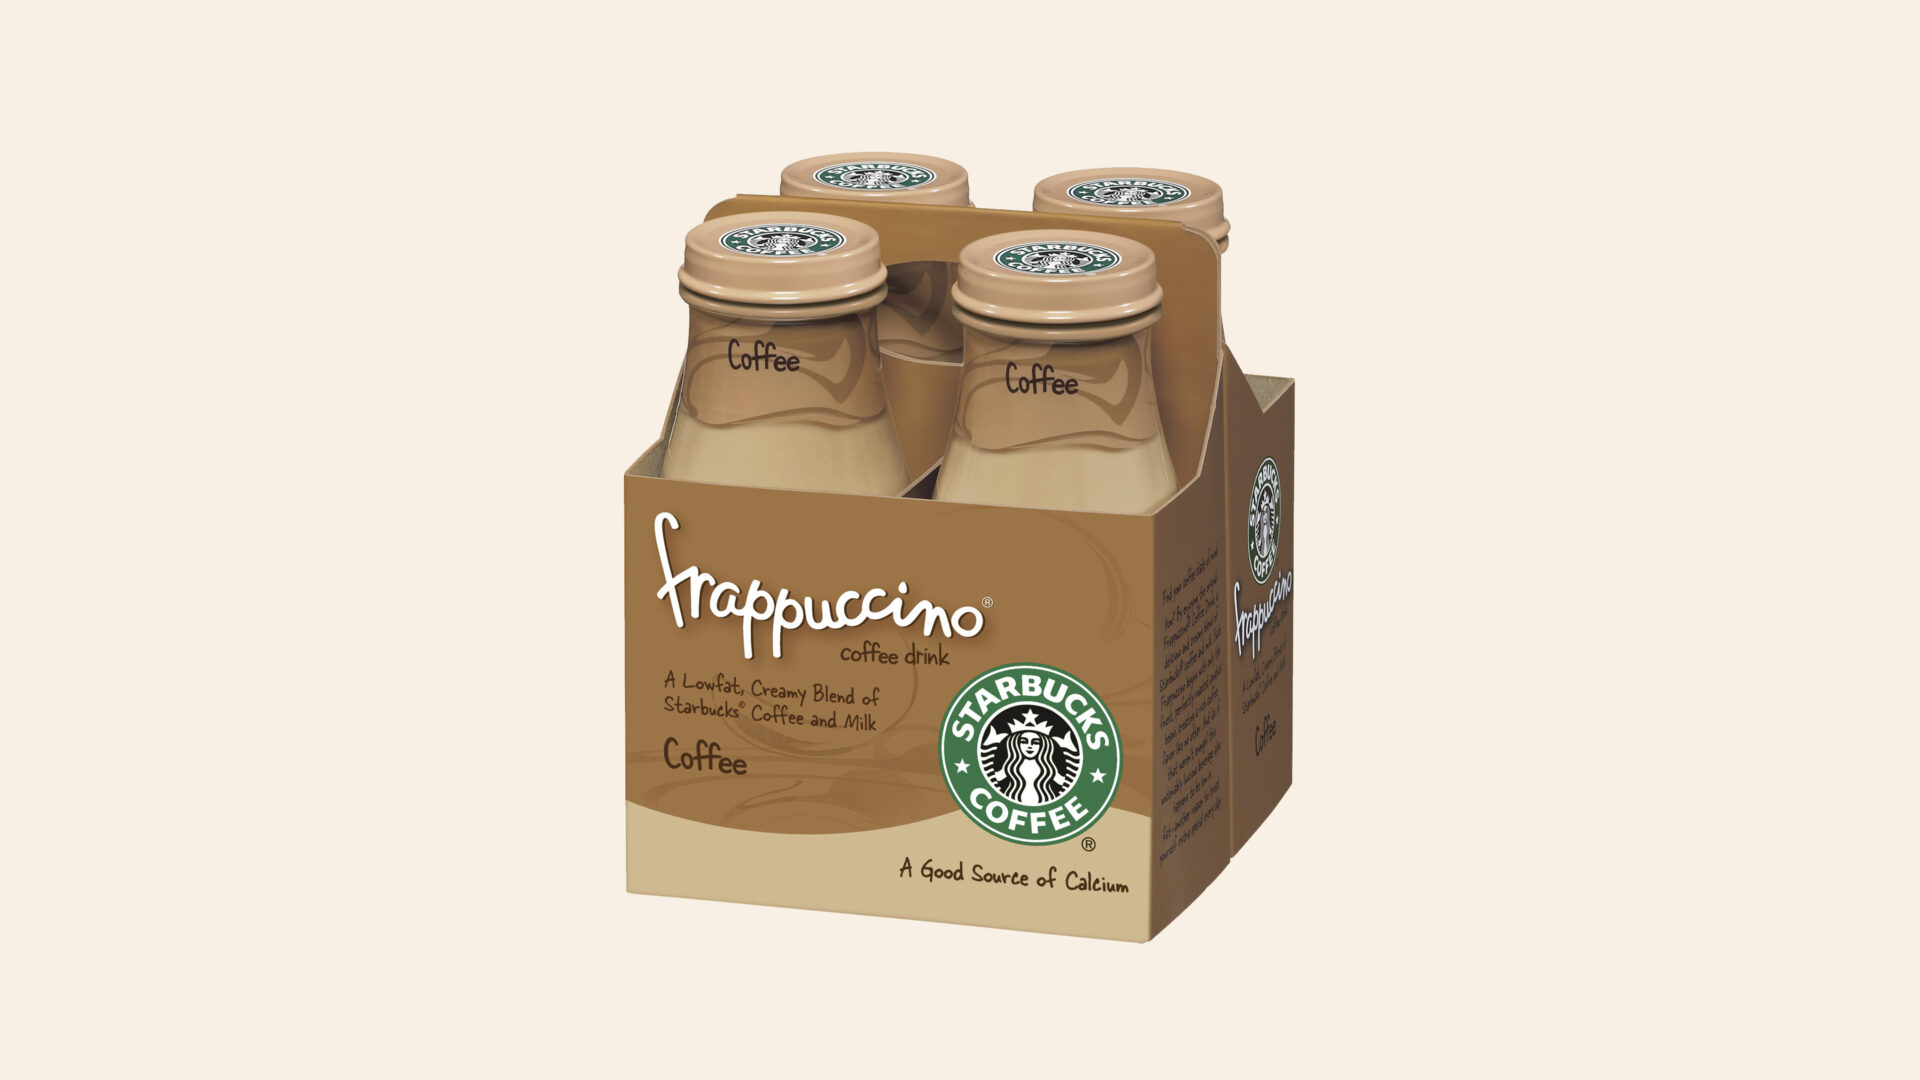 Bottled Frappuccino